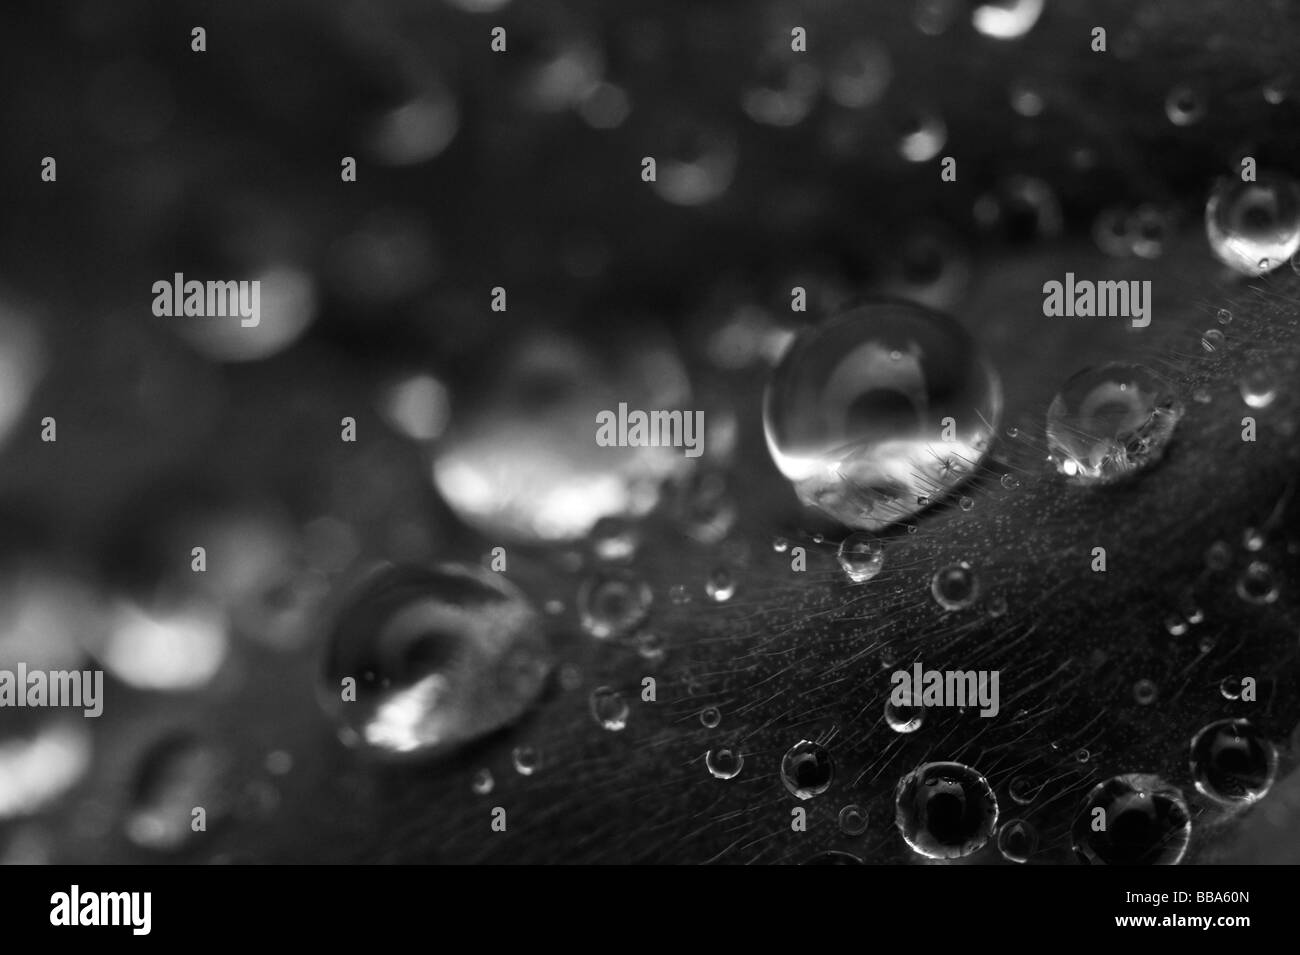 Rain drops on a leaf in close up and black and white. - Stock Image